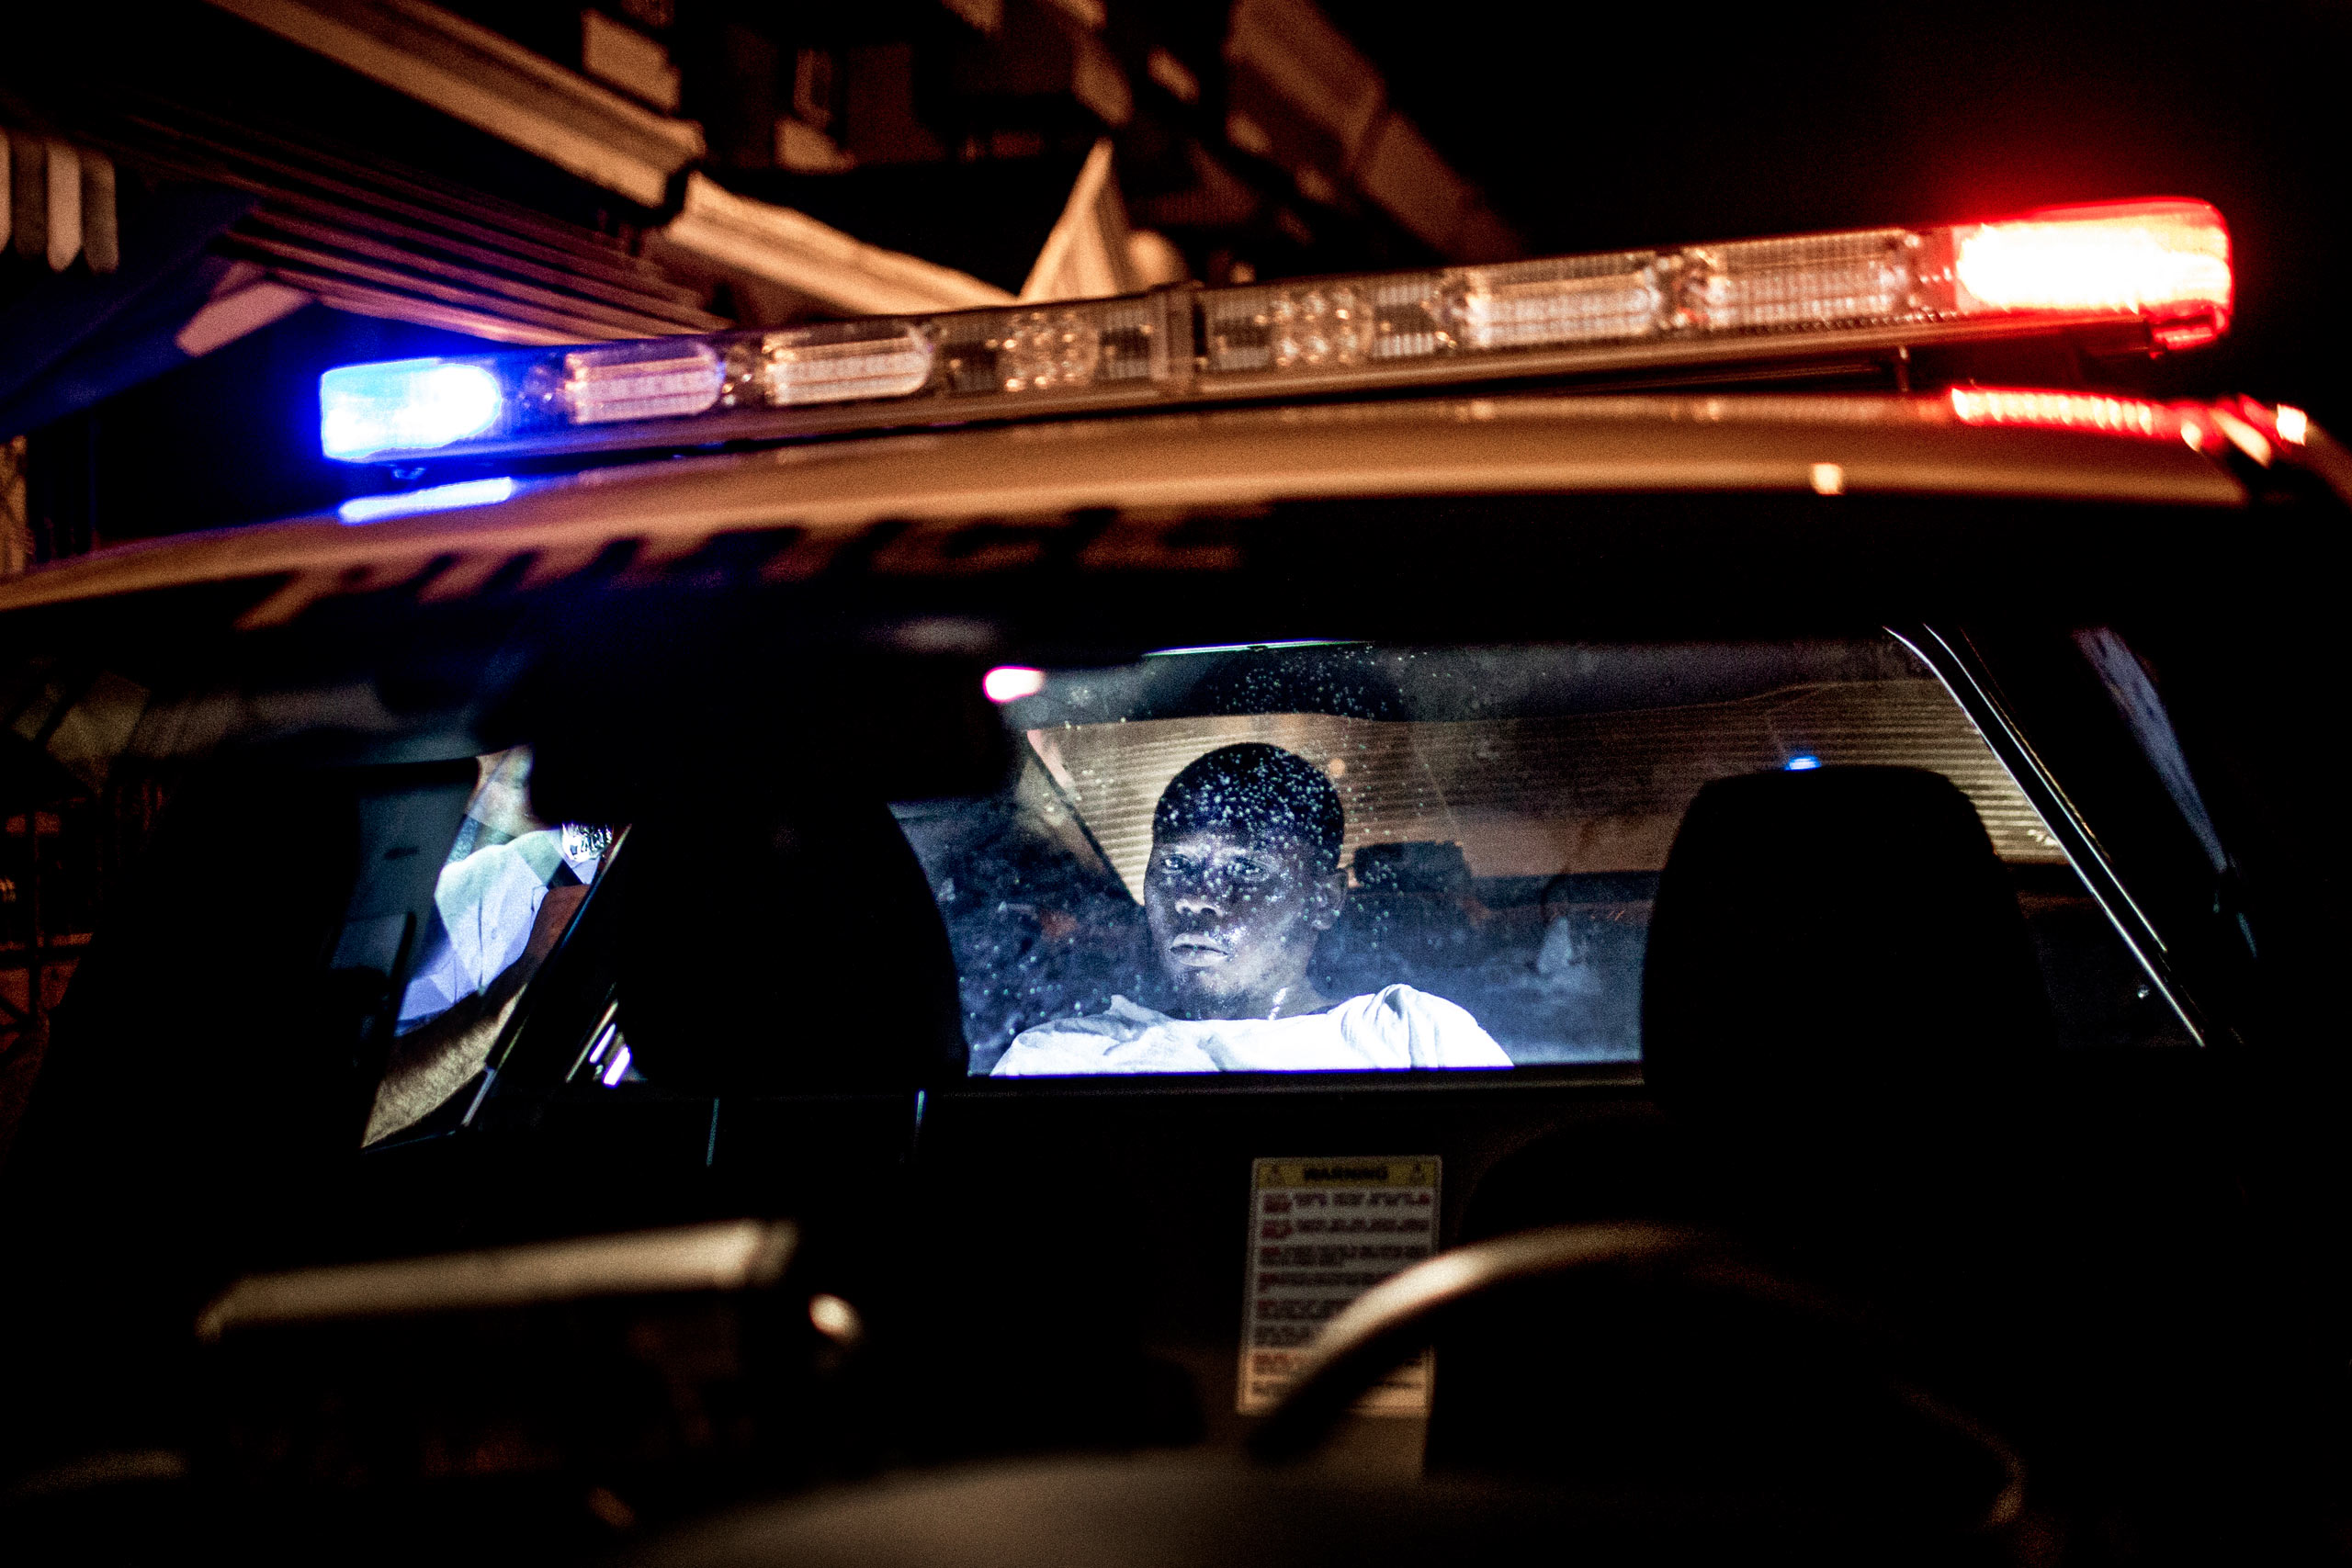 After running from the police and being caught, a young man recovers in the back of a patrol car. When asked why he ran he said he had had bad experiences with the police in the past. No evidence of criminal activity was found on him or nearby and he was ultimately released. July 31st, 2015. Philadelphia, Pa.